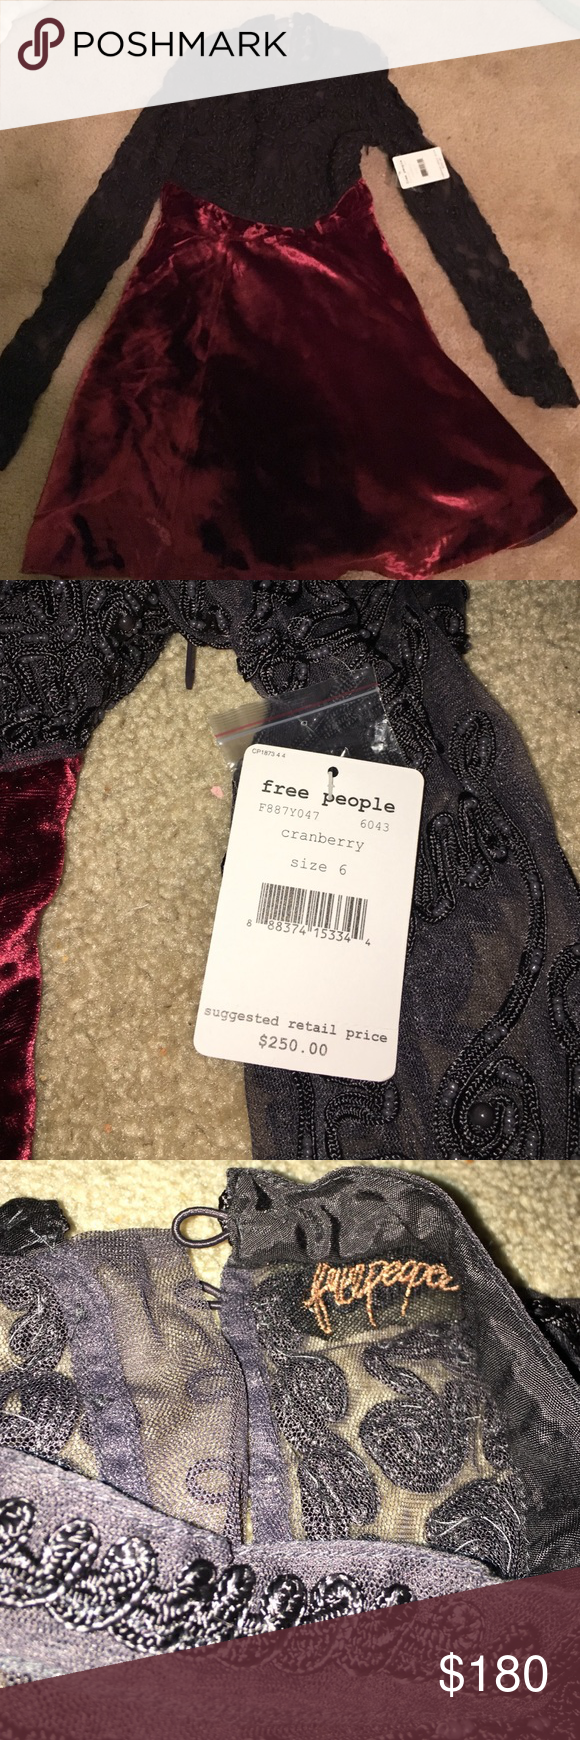 BRAND NEW LOWER PRICE - FREE PEOPLE DRESS! Brand new w tags, free people dress with velvet bottom and long sleeved laced top. Size 6- never worn!!!! Make an offer! Free People Dresses Midi